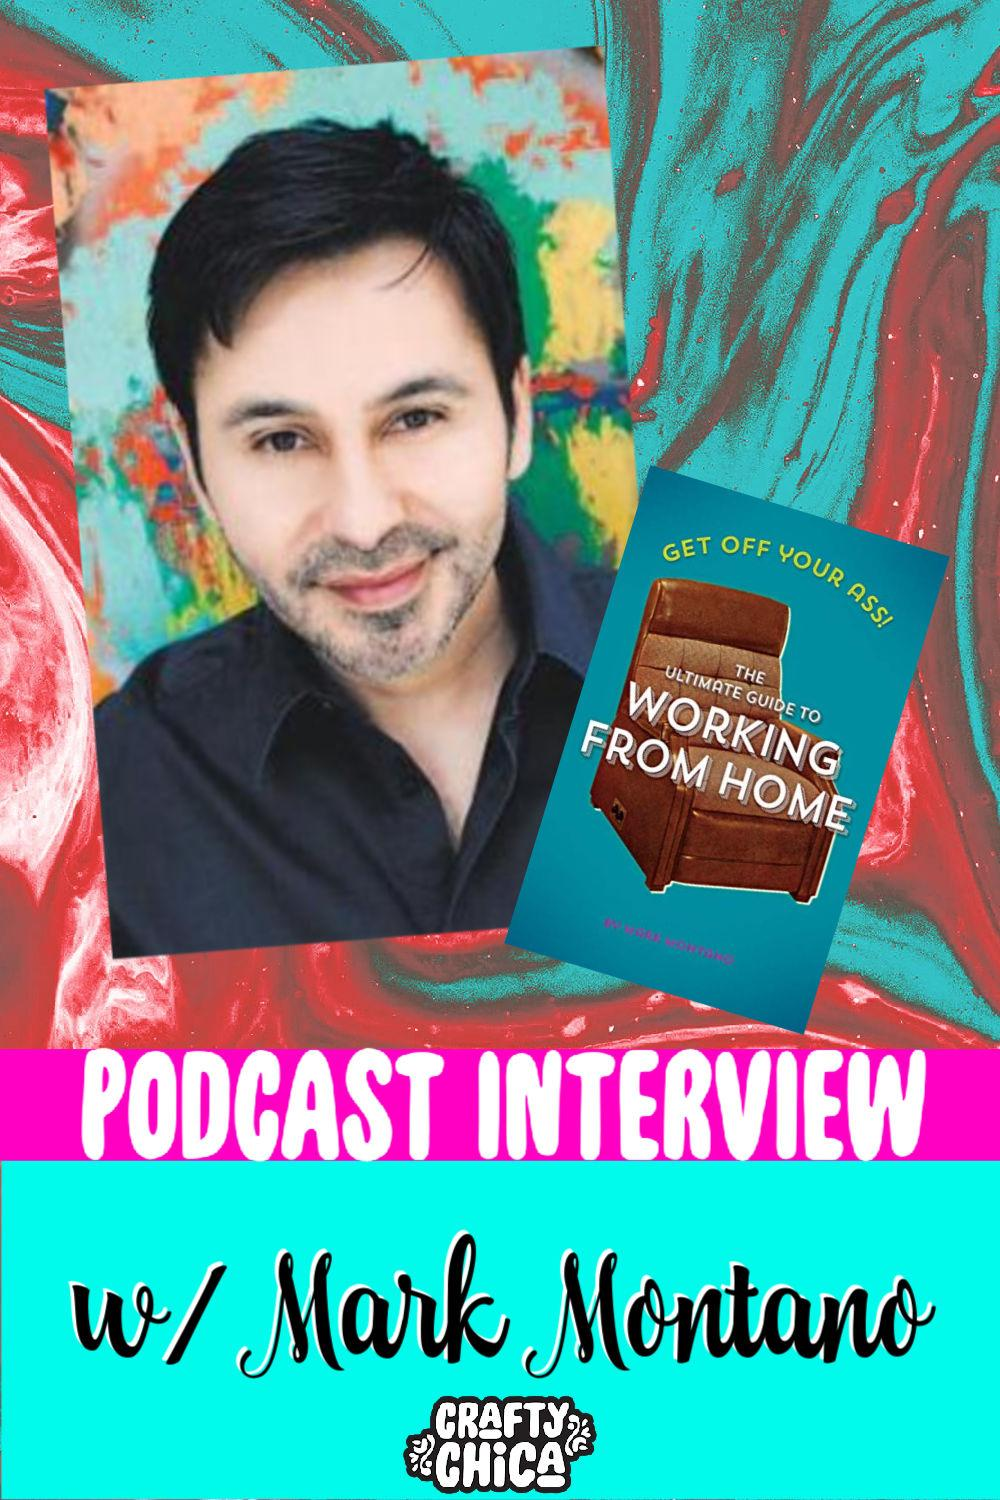 Work from home tips with Mark Montano